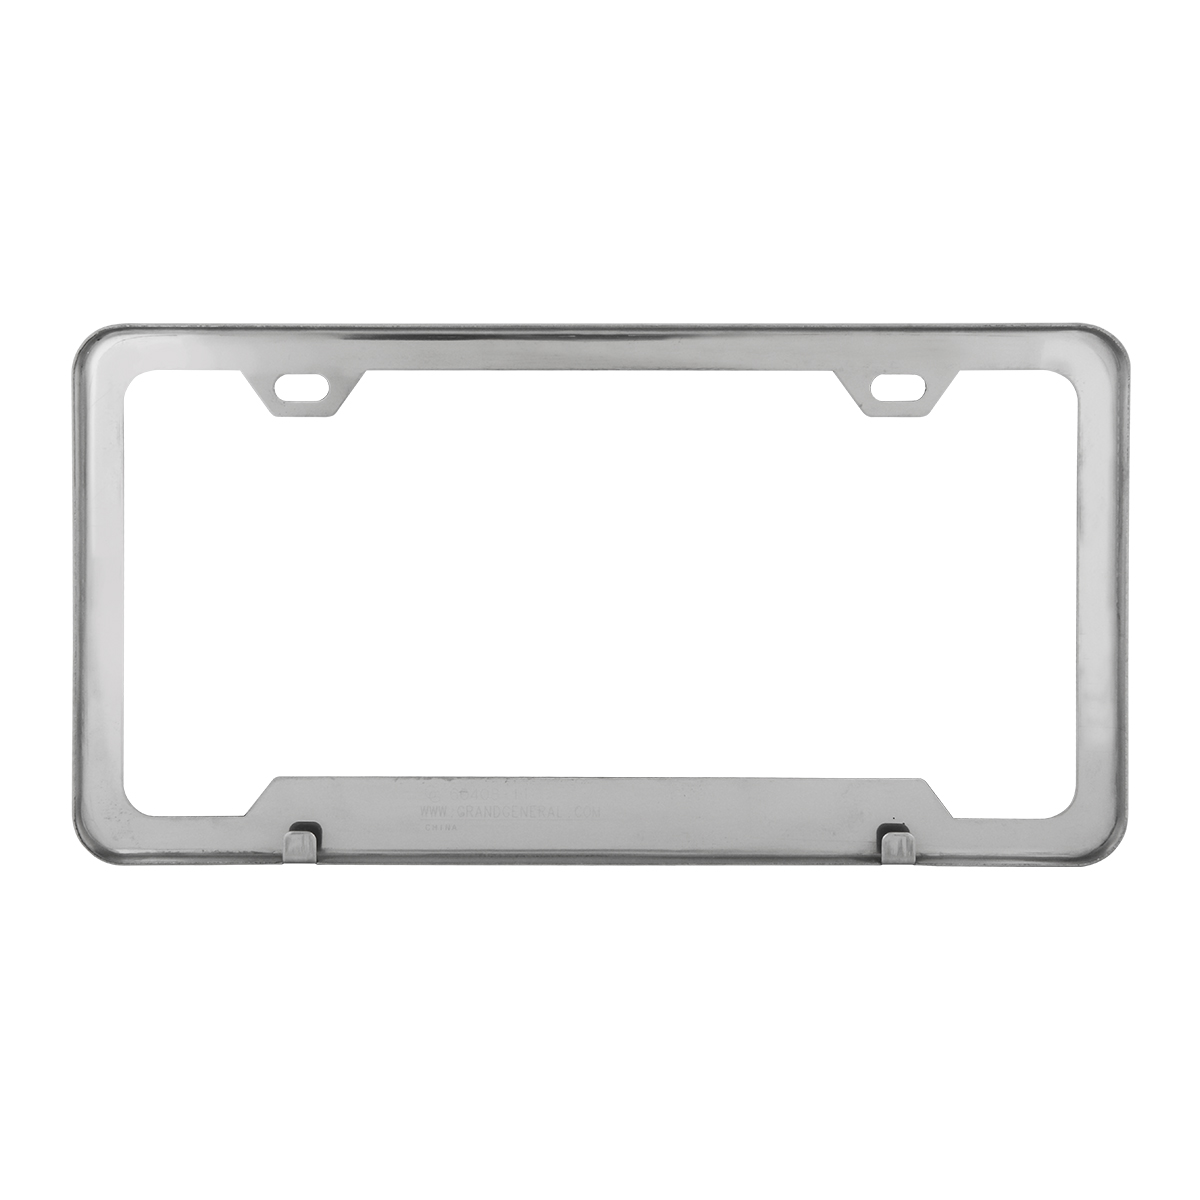 60409 Plain 2-Hole License Plate Frames with Center Raised